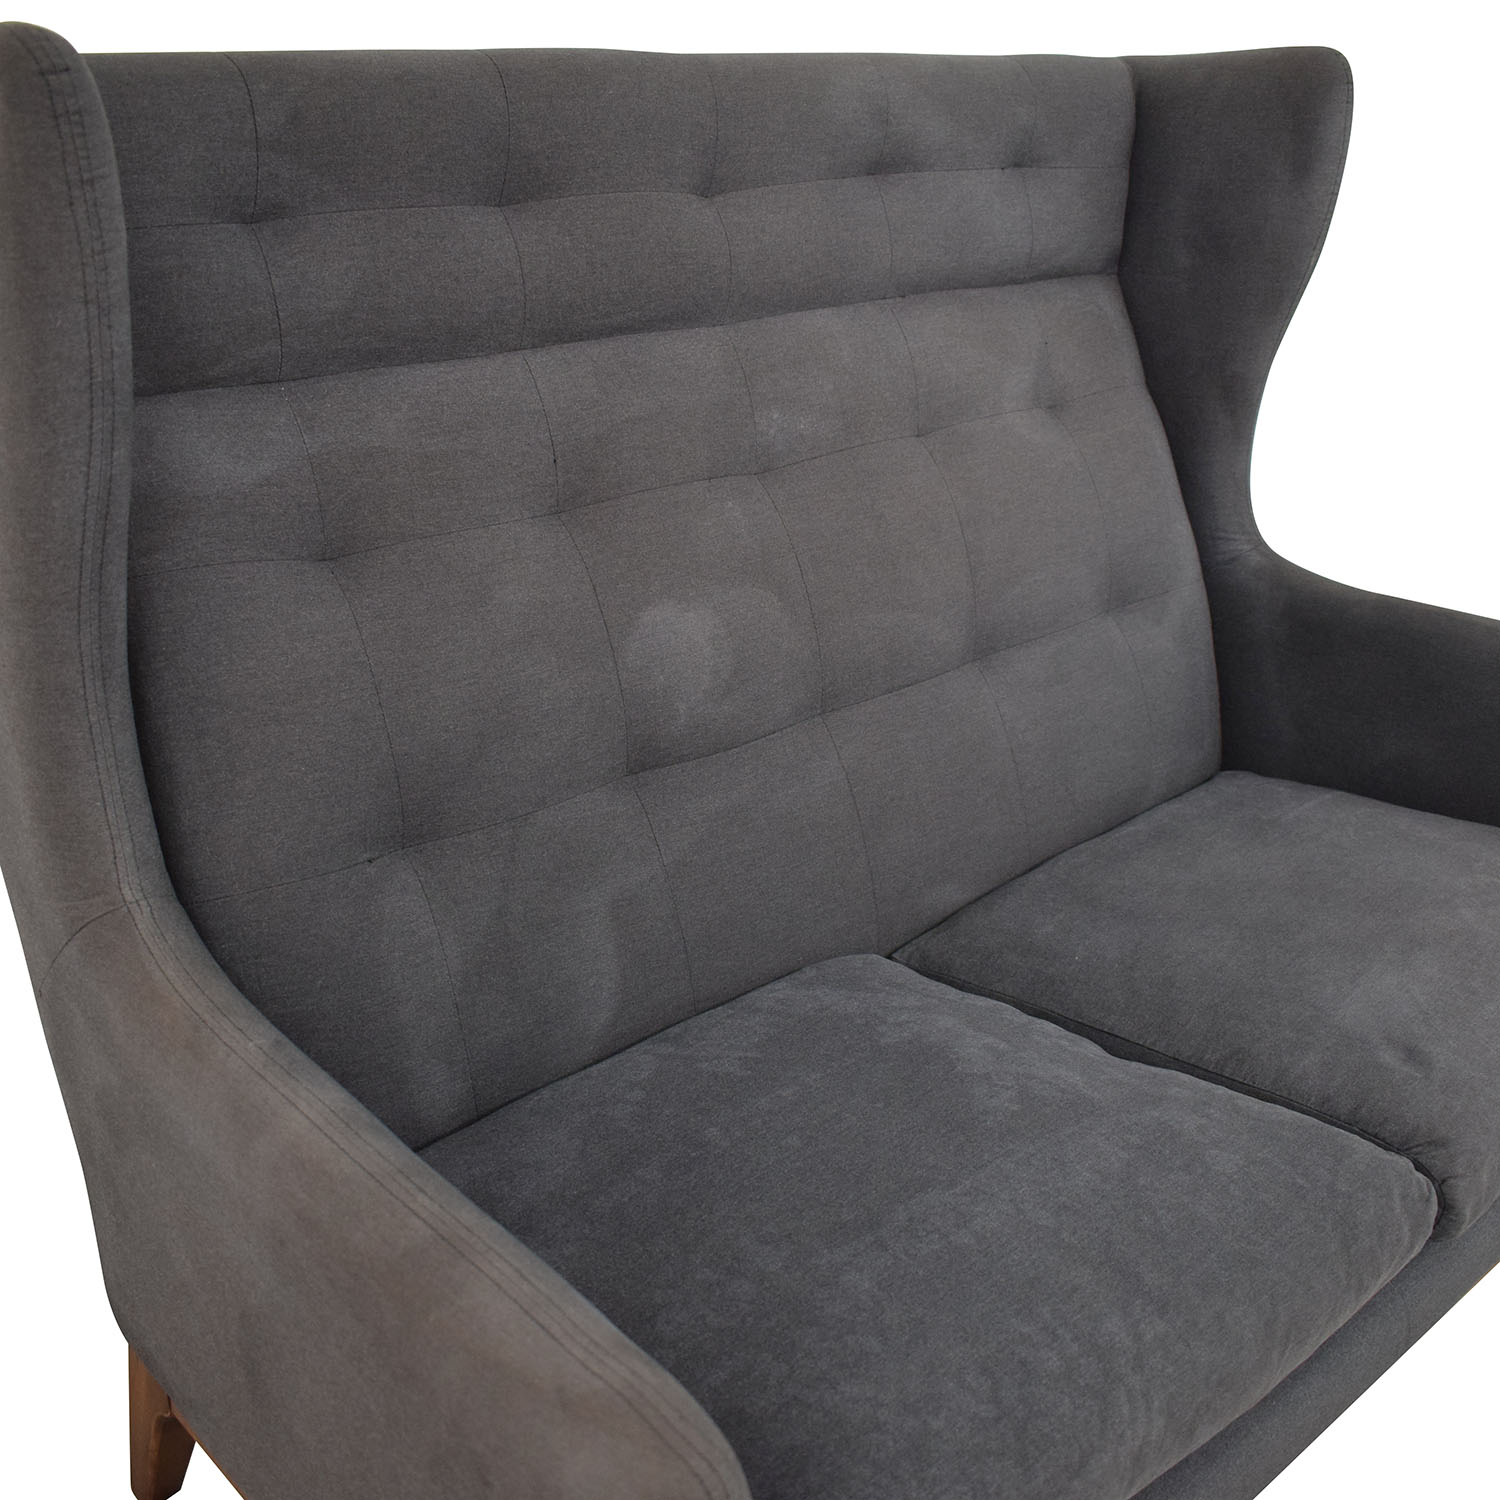 West Elm West Elm James Harrison Settee used